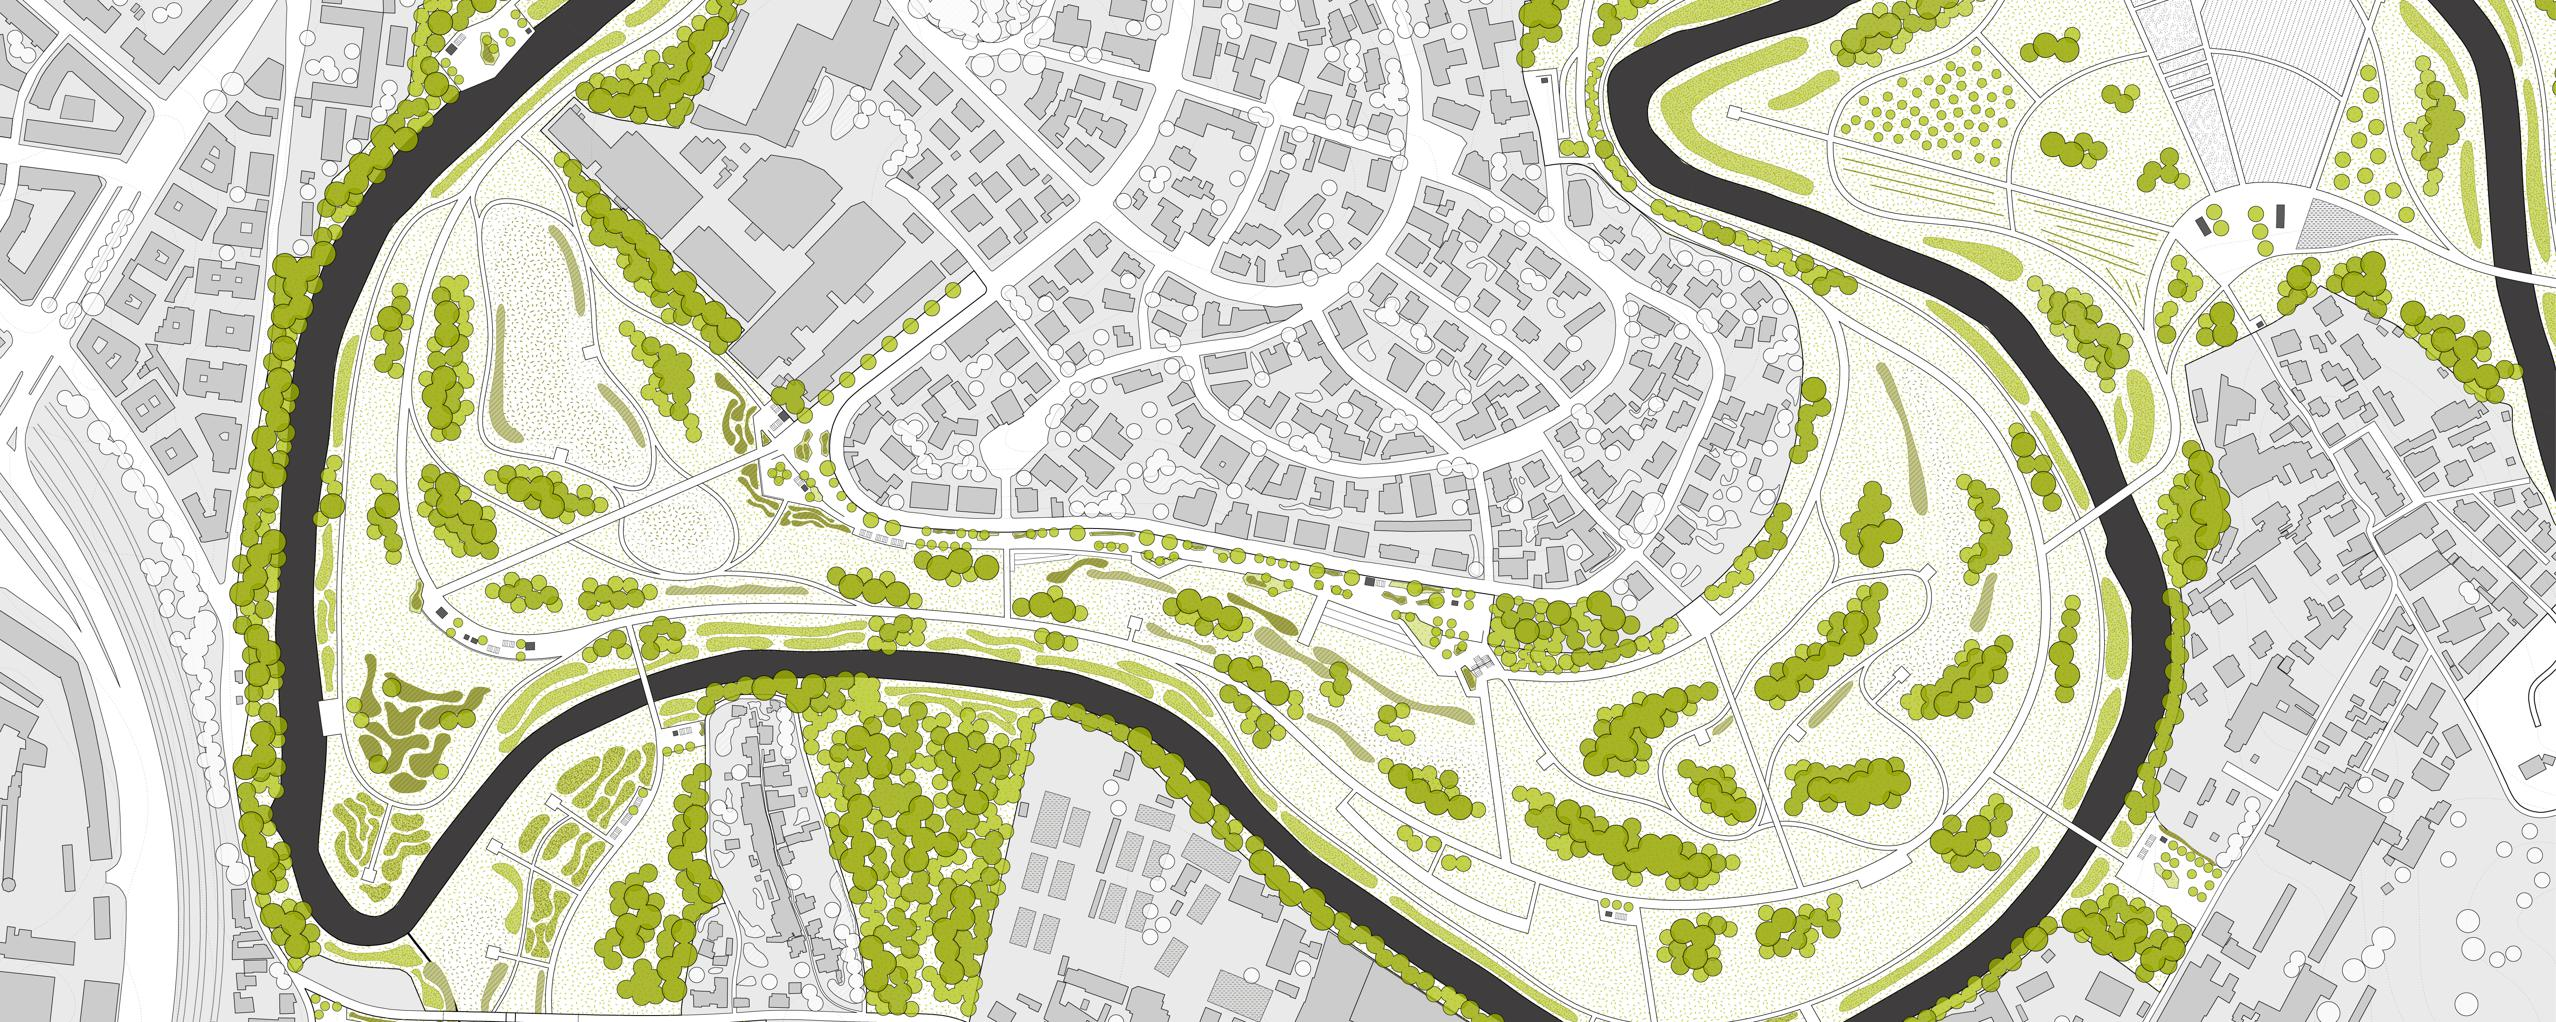 CLIMATE CHANGE & URBAN RESILIENCE / A new urban park along